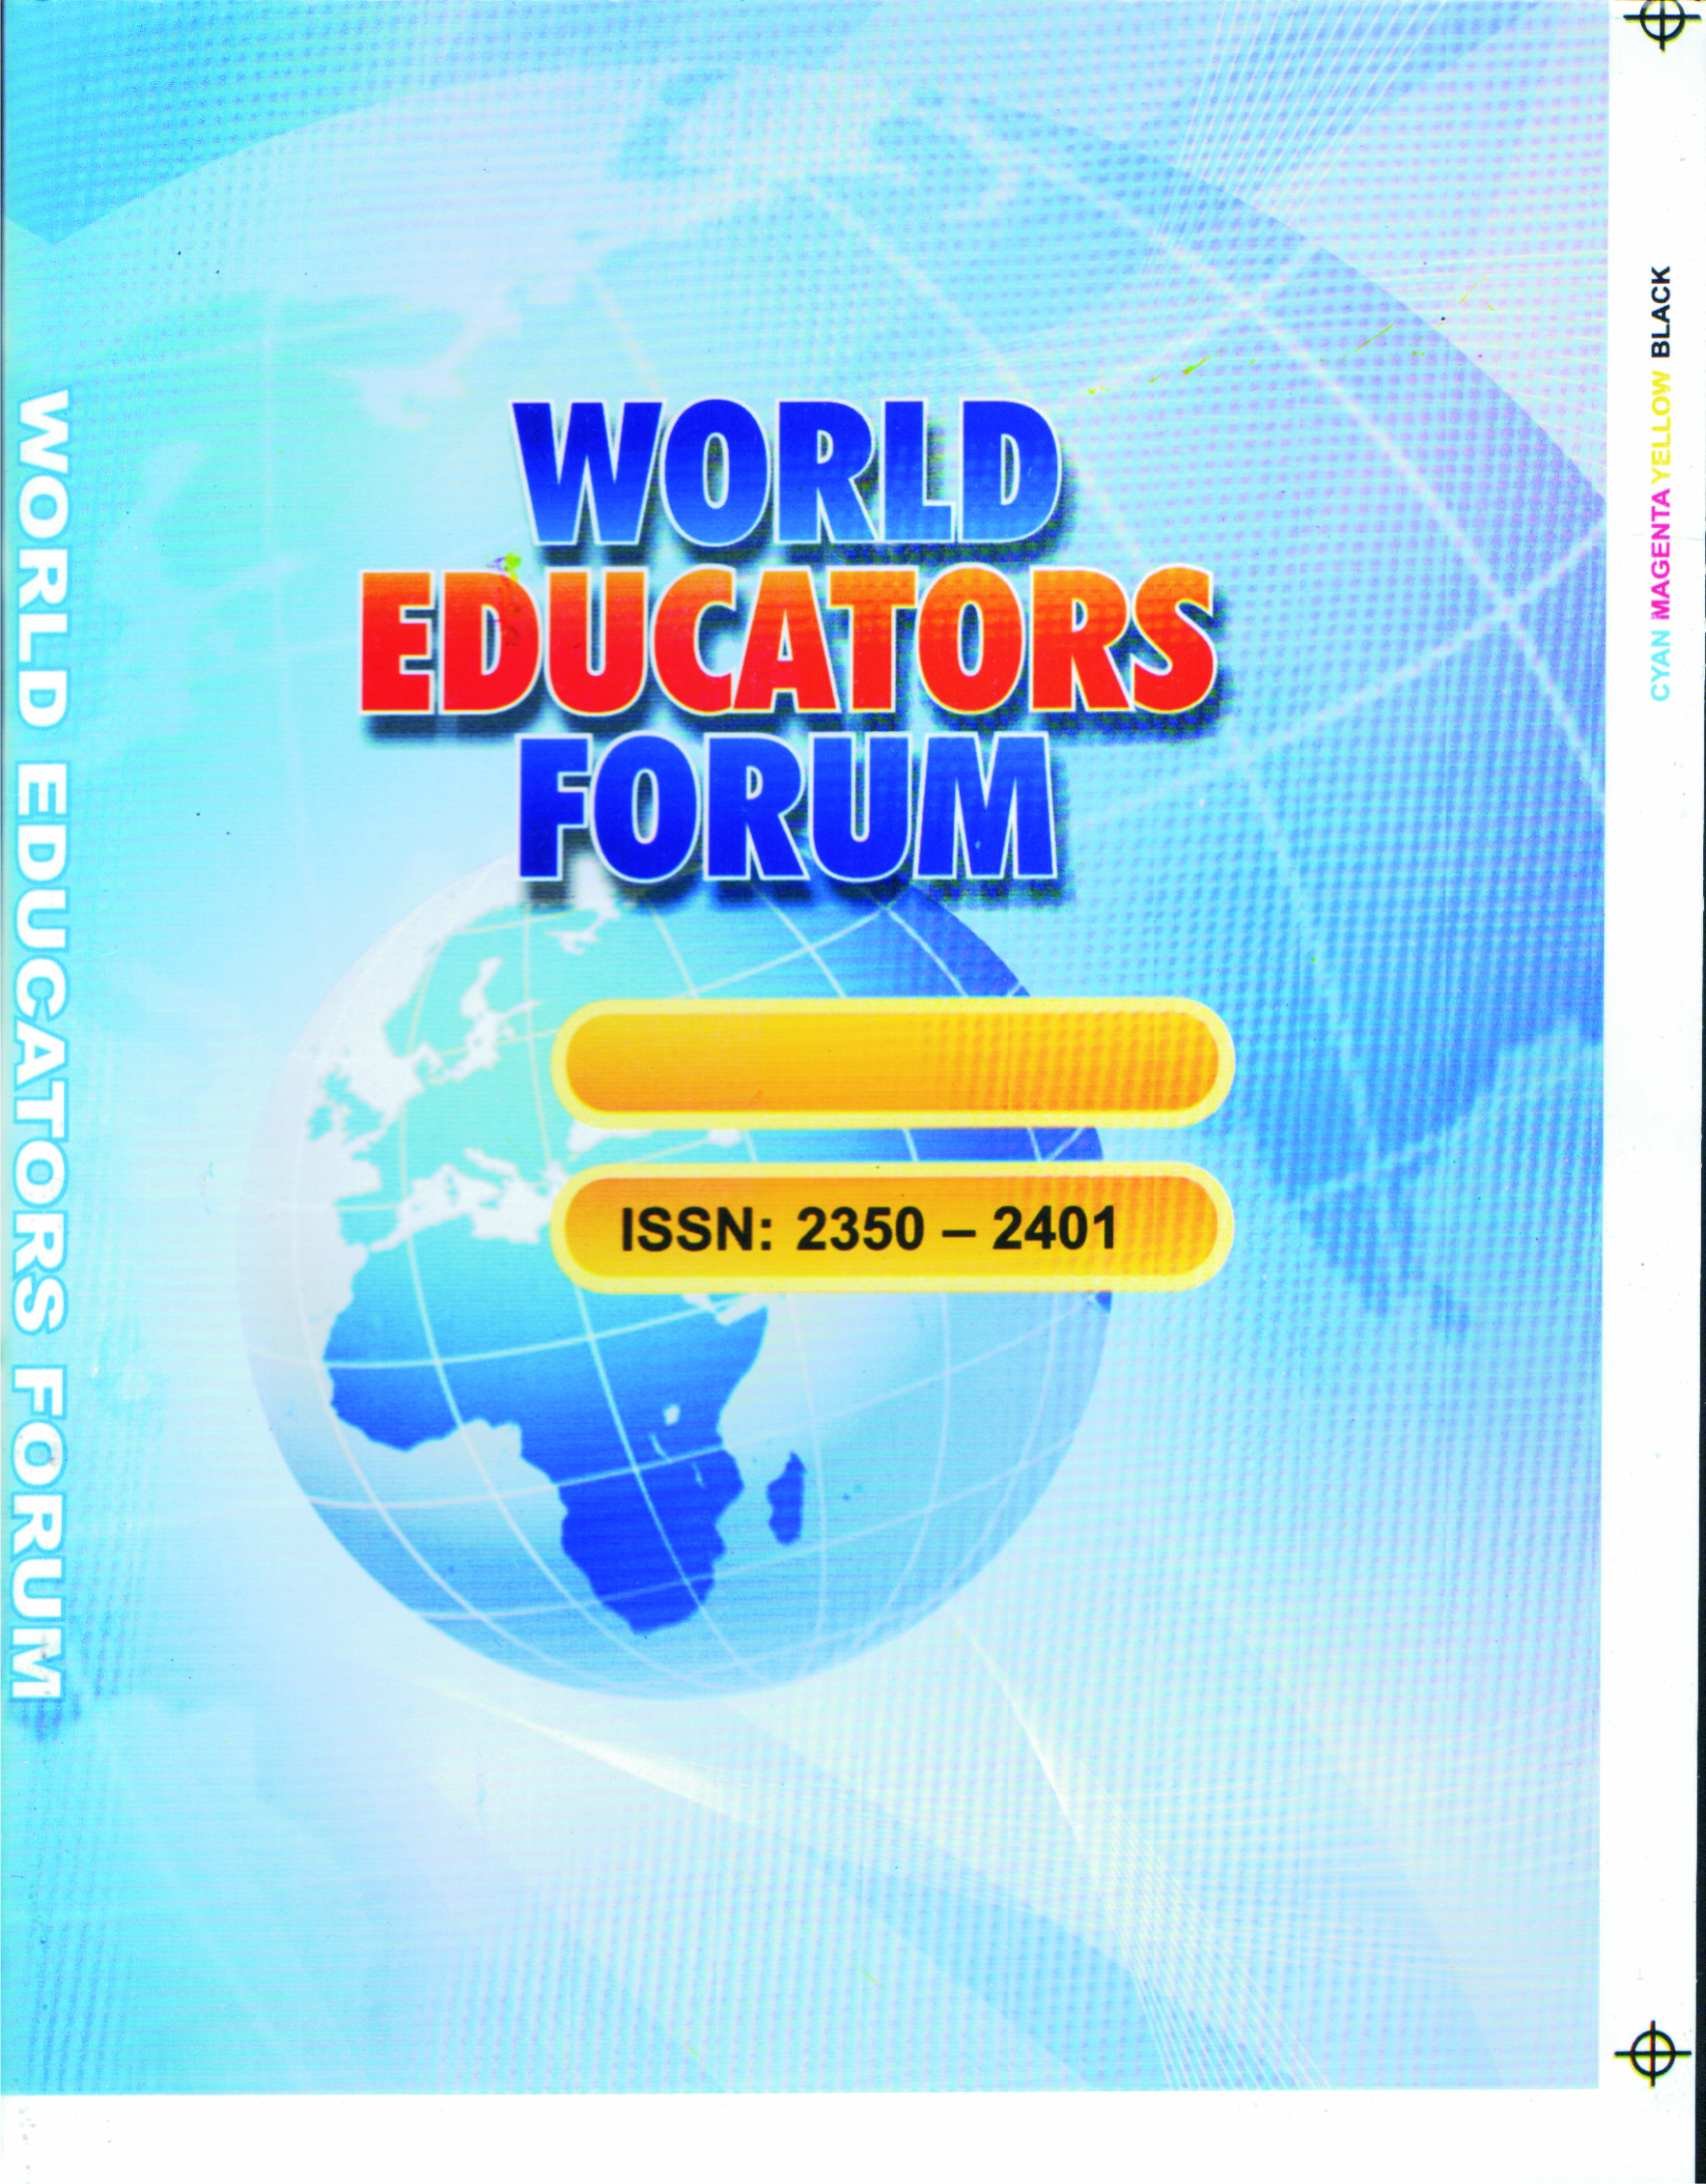 World Educators Forum